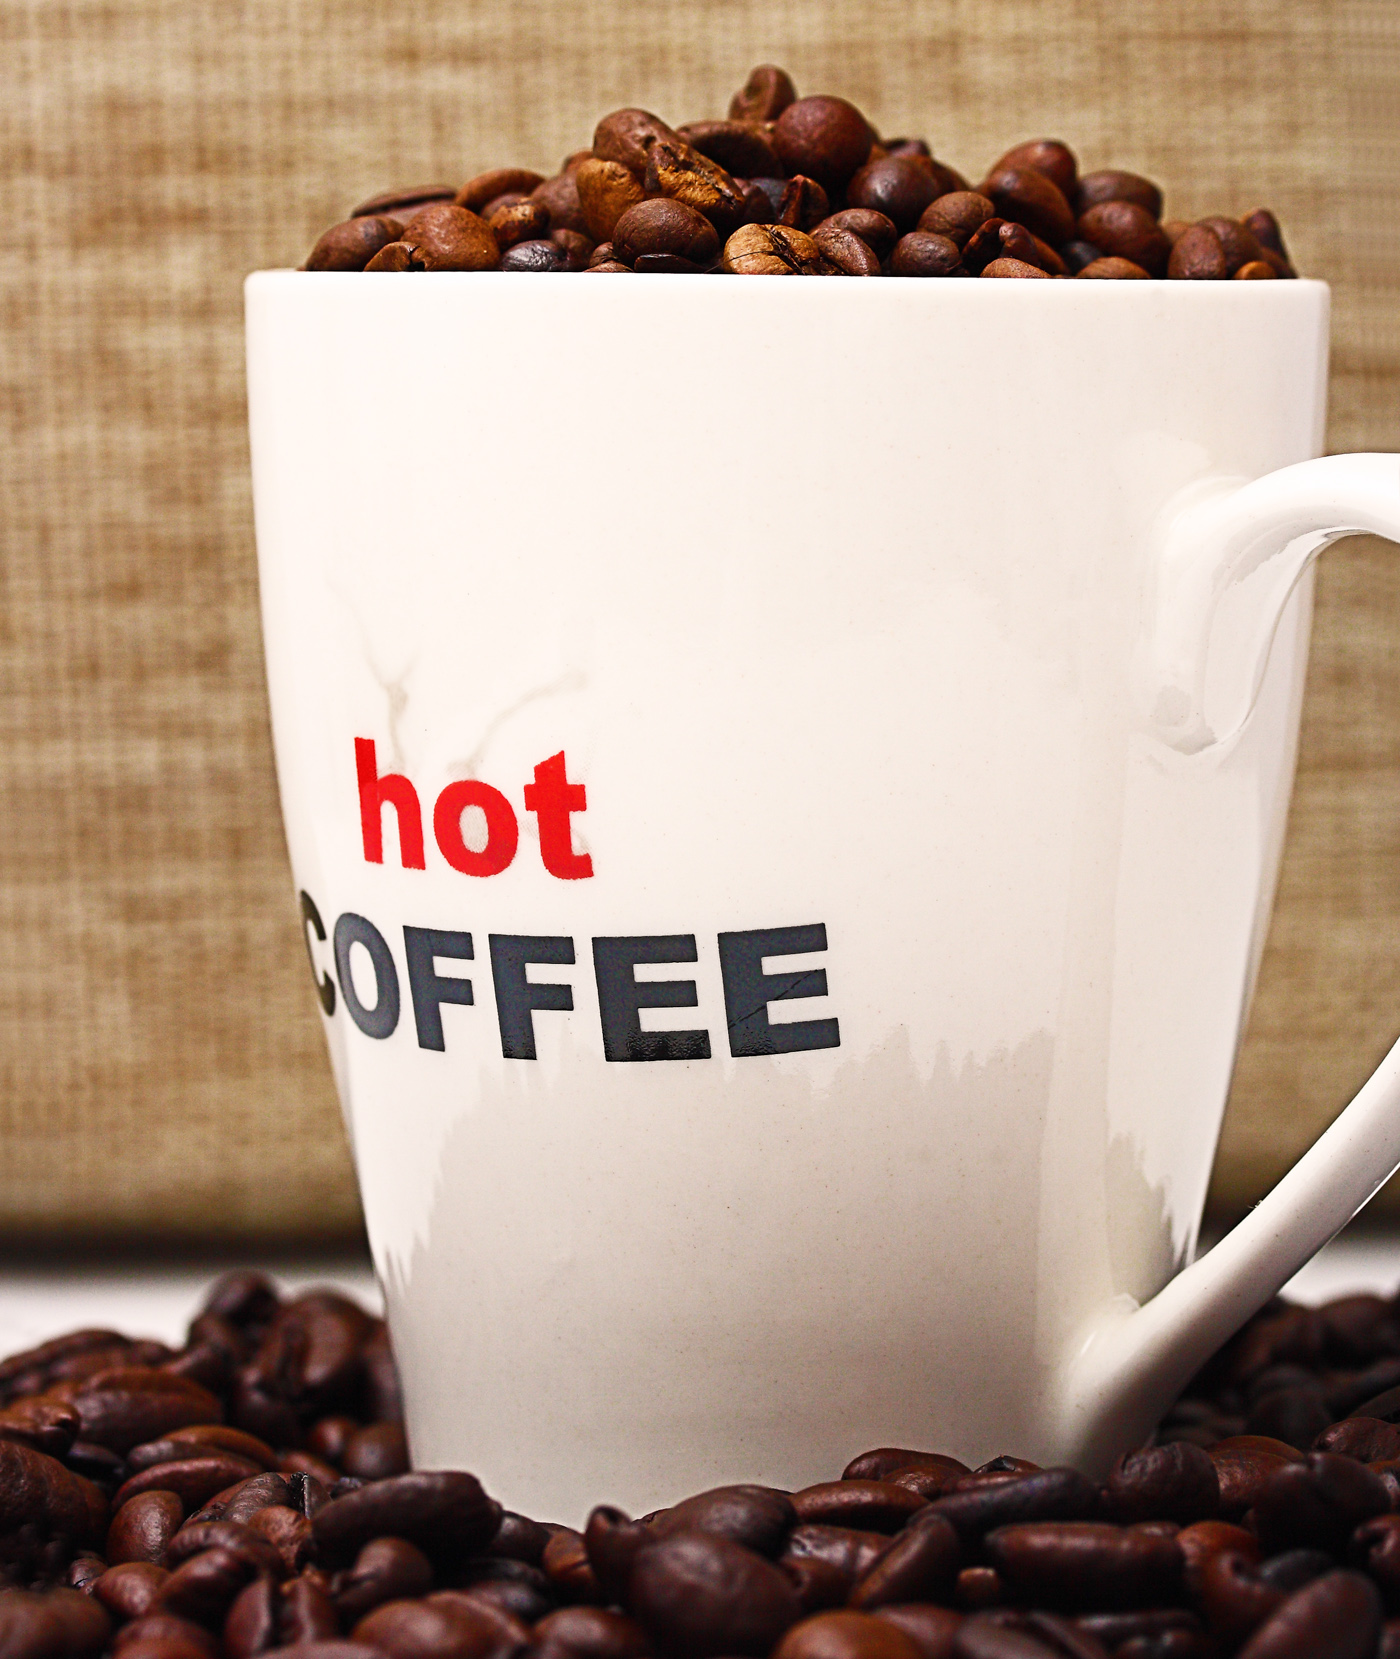 Hot Coffee For A Relaxing Break, Bean, Grains, Strong, Seed, HQ Photo